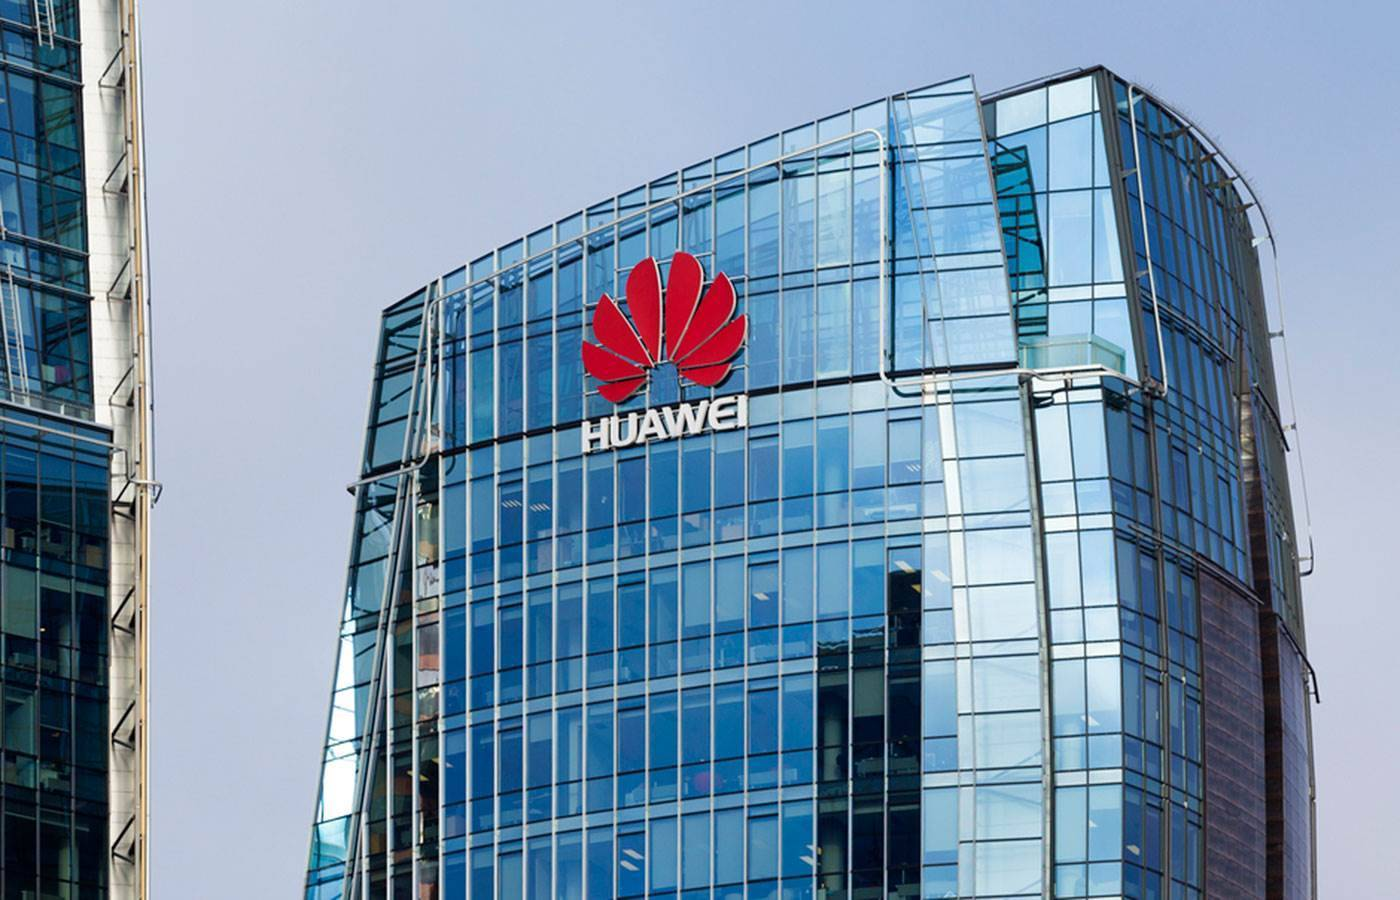 Huawei Opens Up To German Scrutiny Ahead Of 5g Auctions